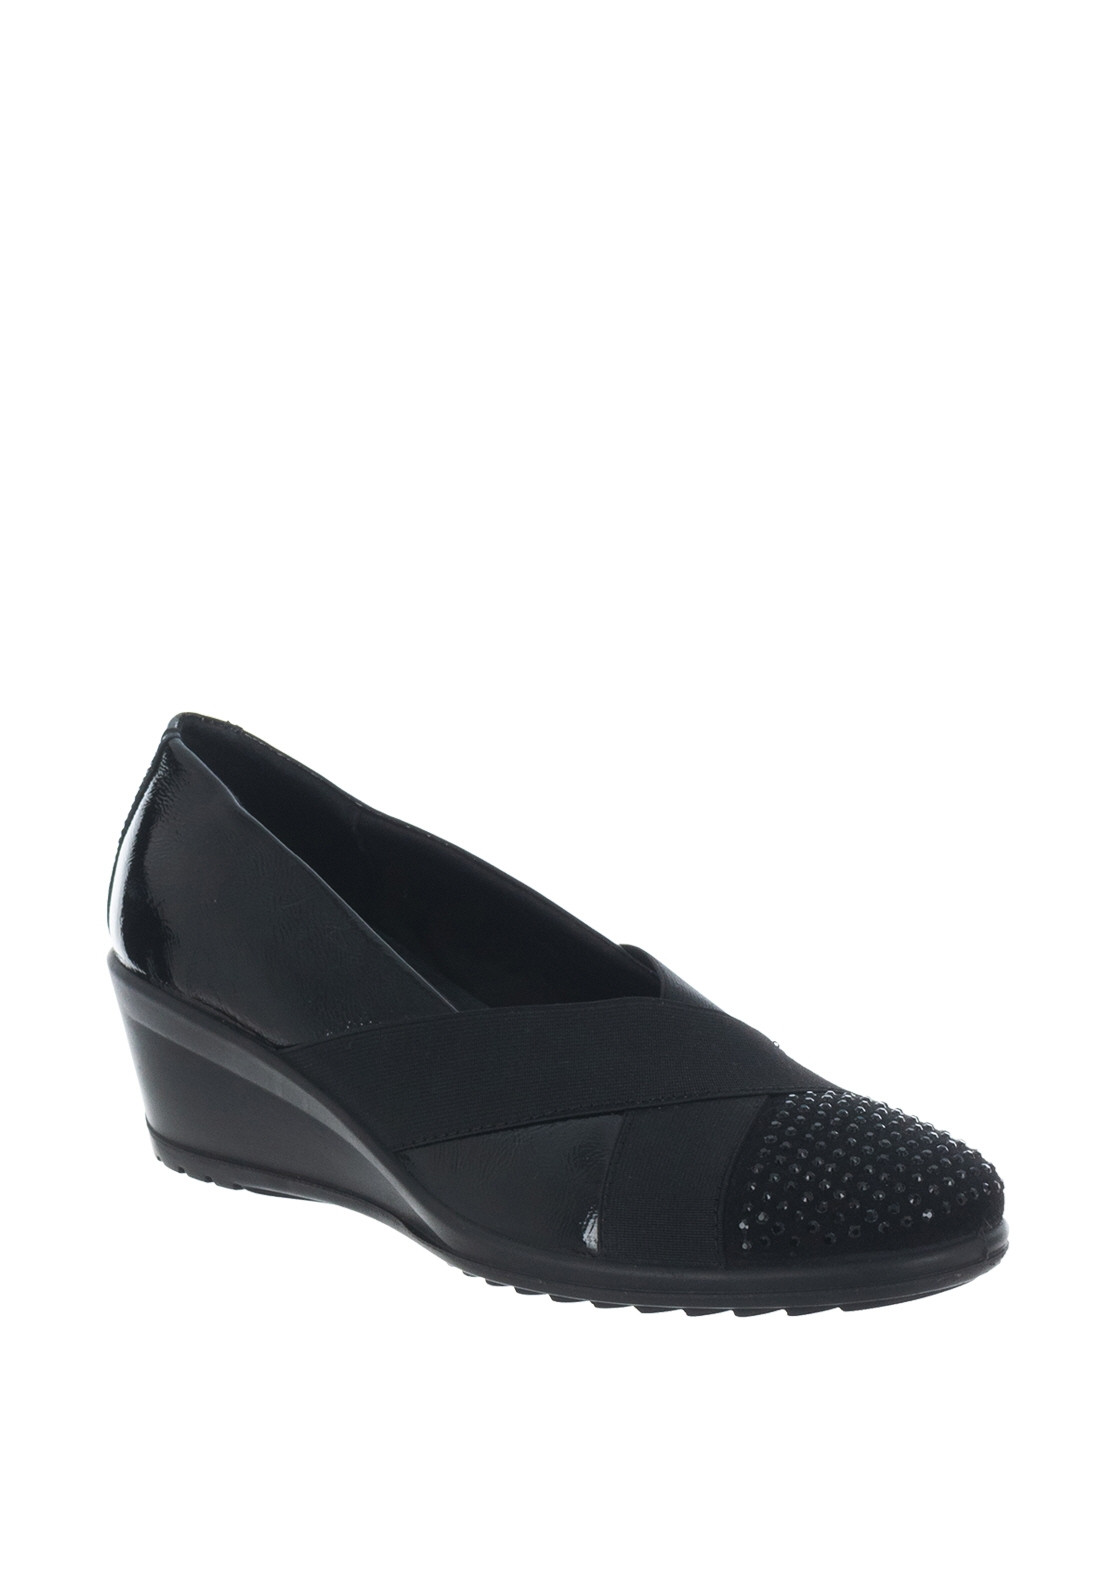 efd27cc10a7ad Van Dal Charity Patent Elastic Trim Comfort Shoes, Black. Be the first to  review this product